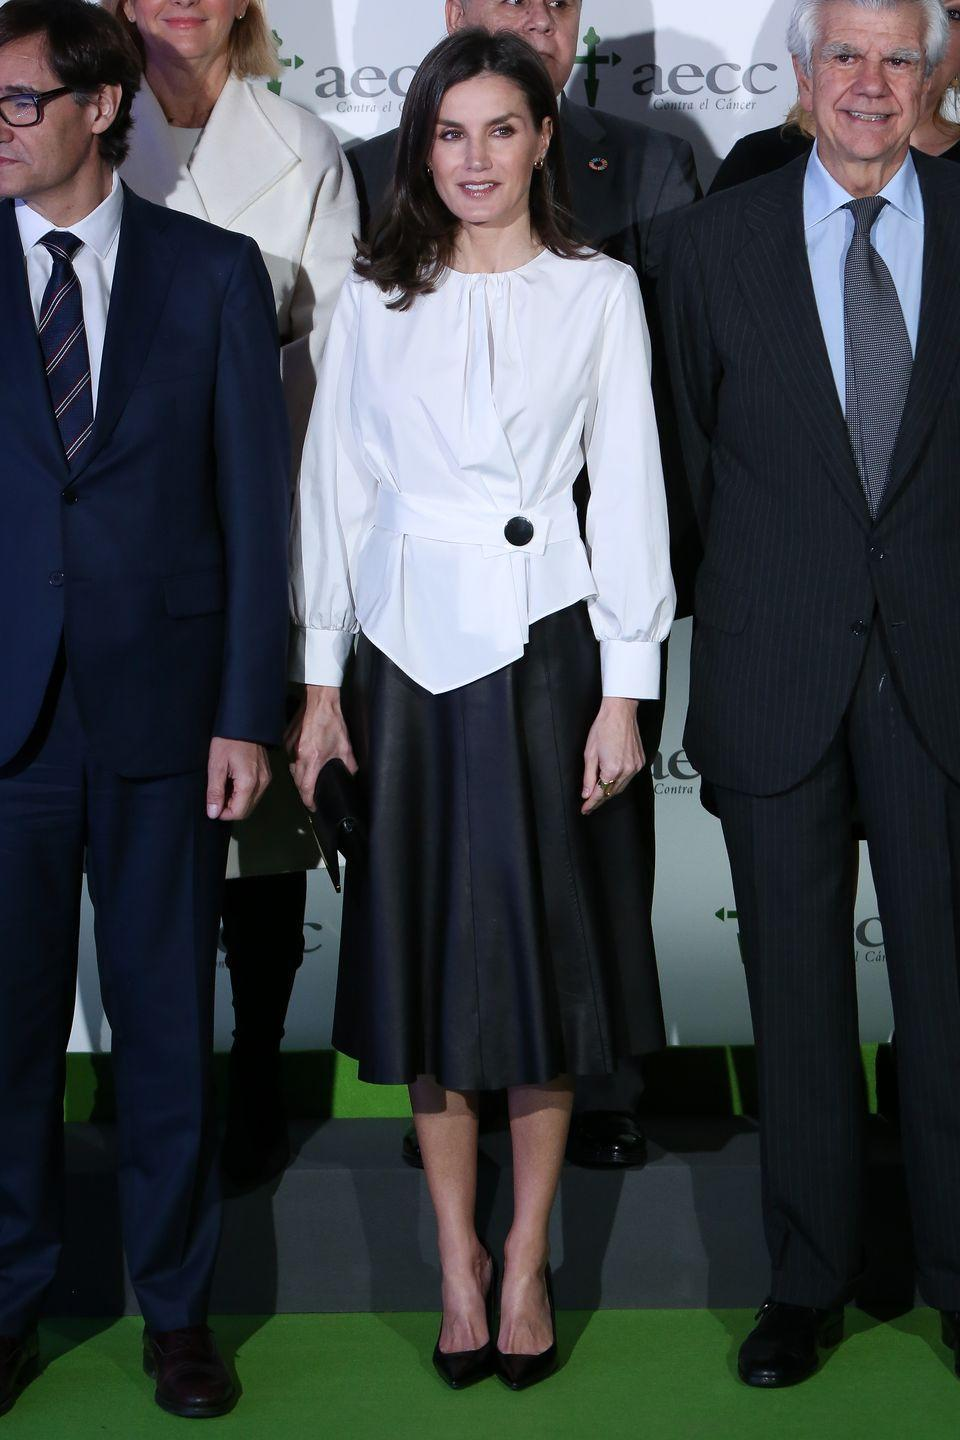 "<p>Queen Letizia wore this black and white outfit to the forum against cancer ( ""El impacto economico y social del cancer en España"") in Madrid. </p>"